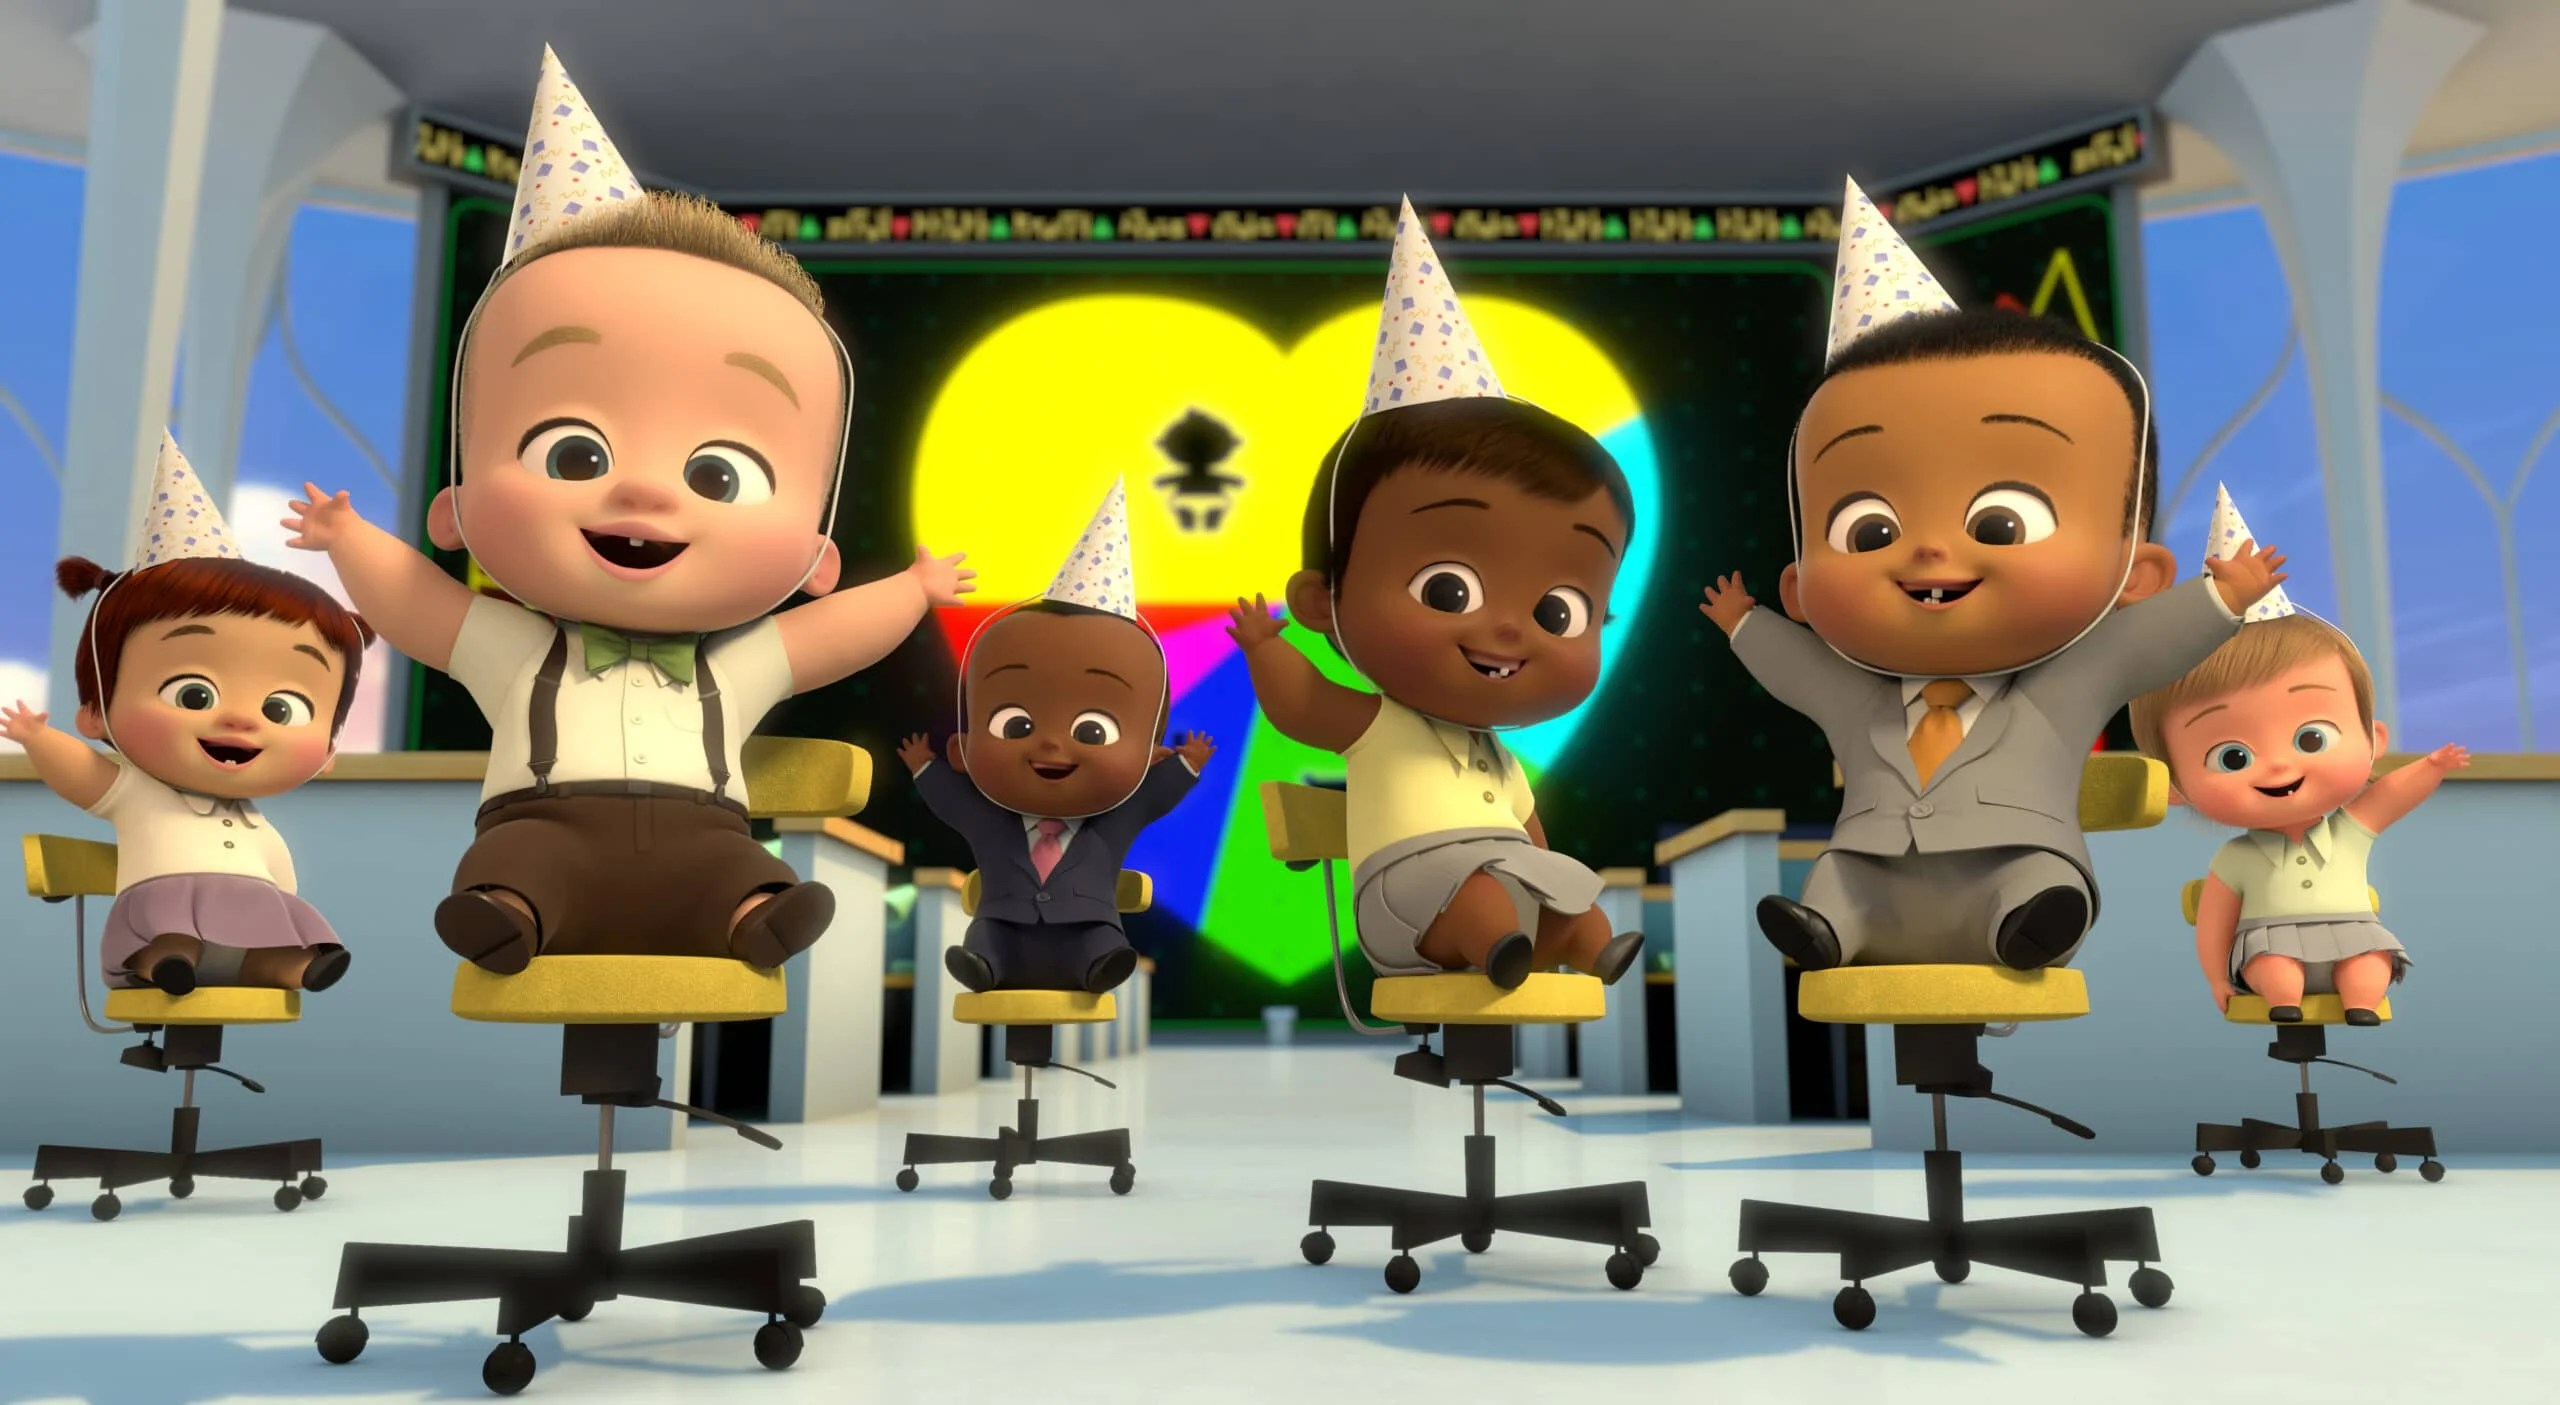 Baby Party DreamWorks The Boss Baby: Get That Baby!. Welcome to the Baby Corp Job Simulator! Through a series of interactive (and hilarious) choices, you will fight off Boss Baby's villains, save Baby Corp, and discover the perfect position for the company's newest recruit: you! DreamWorks The Boss Baby Get That Baby! interactive special comes to Netflix on September 1st.